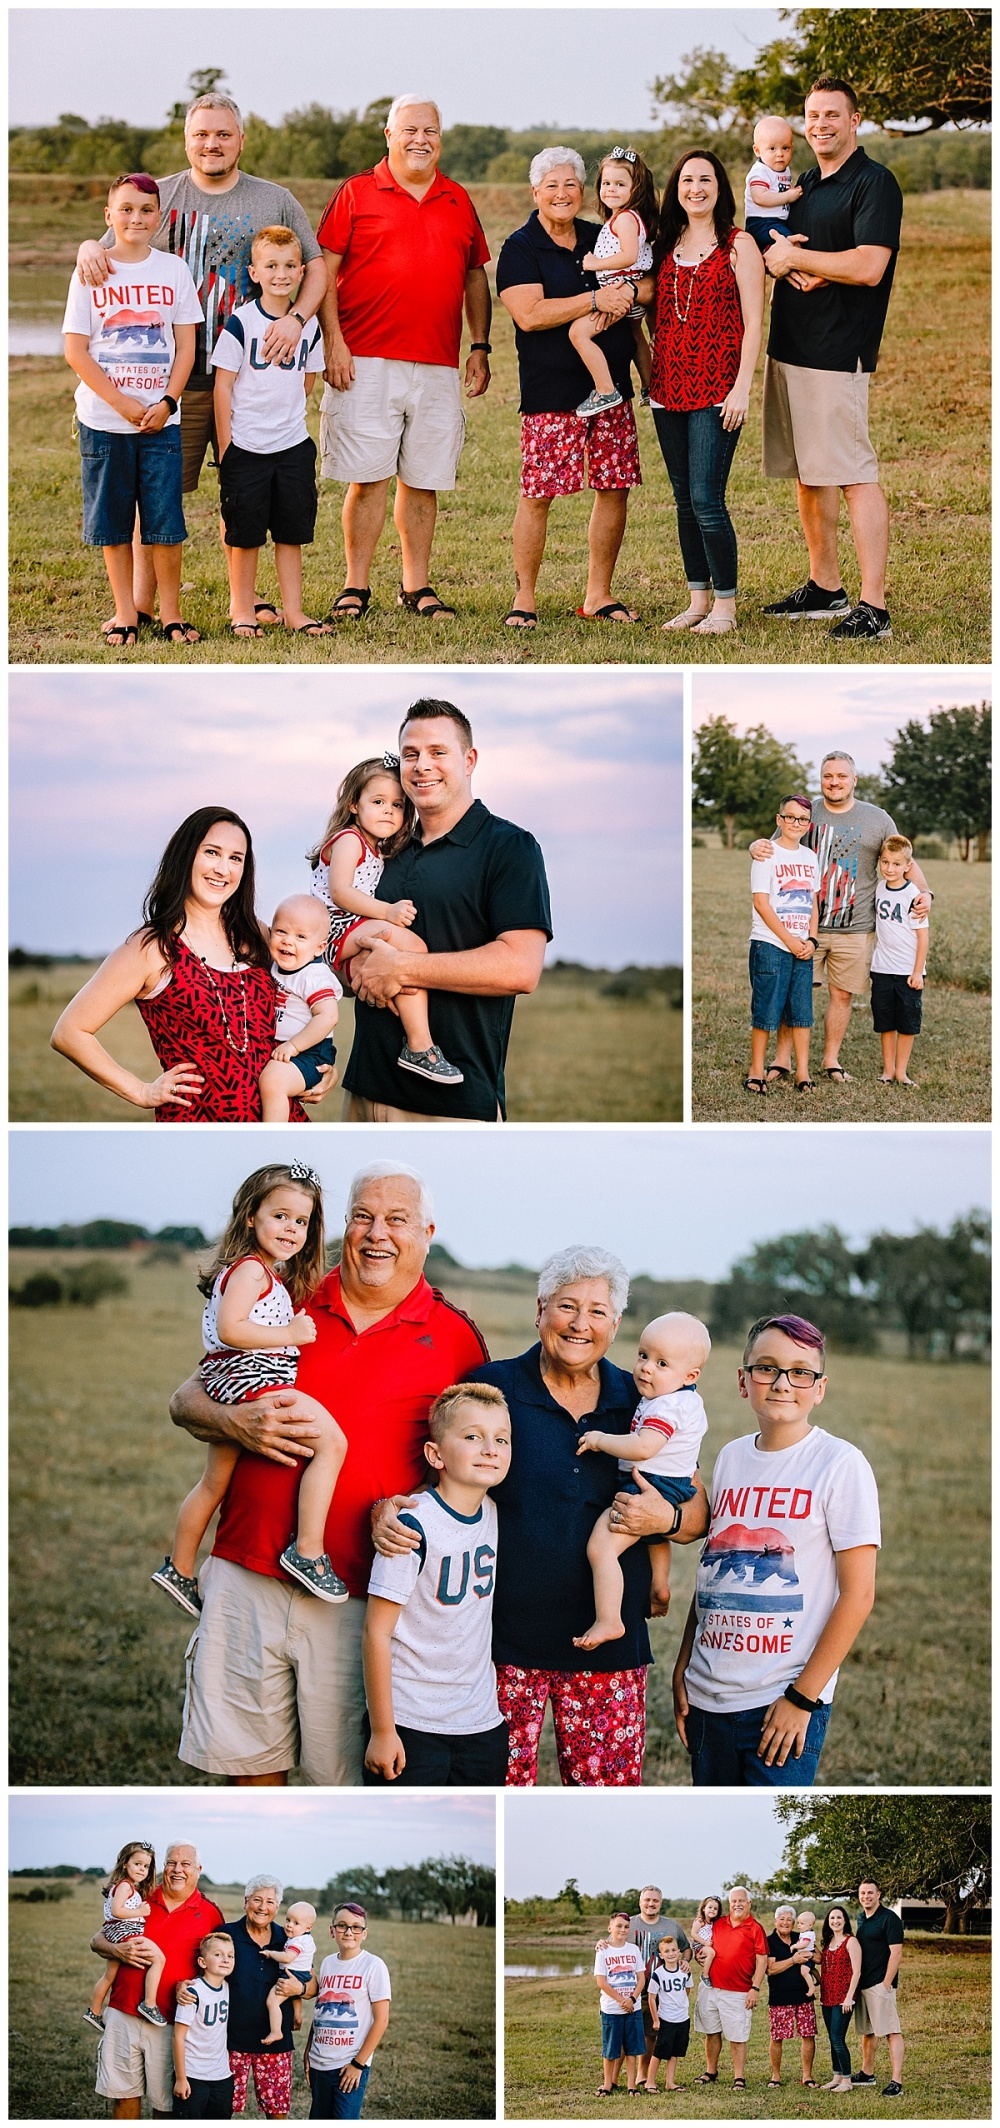 Carly-Barton-Photography-Birthday-Session-LaVernia-Texas-Jameson-1-year-family-photos_0017.jpg